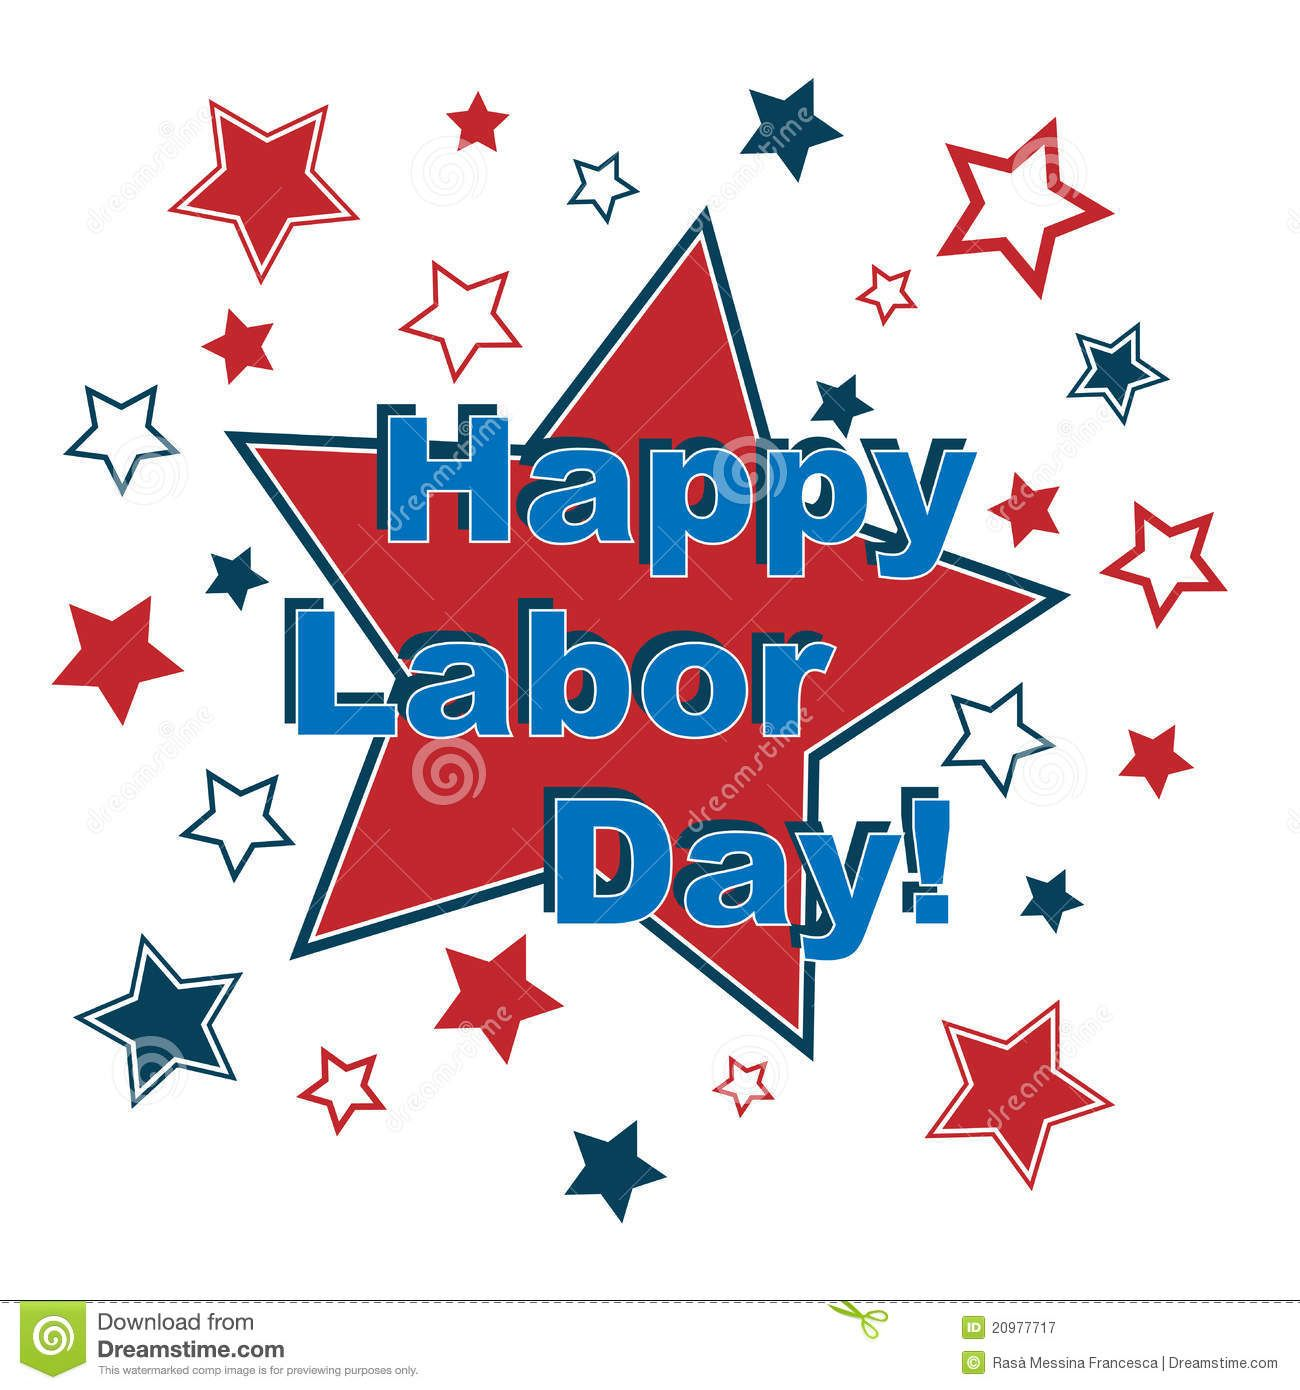 Happy Labor Day Stock Vector Illustration Of Words Graphic 20977717 Labor Day Quotes Labor Day Clip Art Happy Labor Day